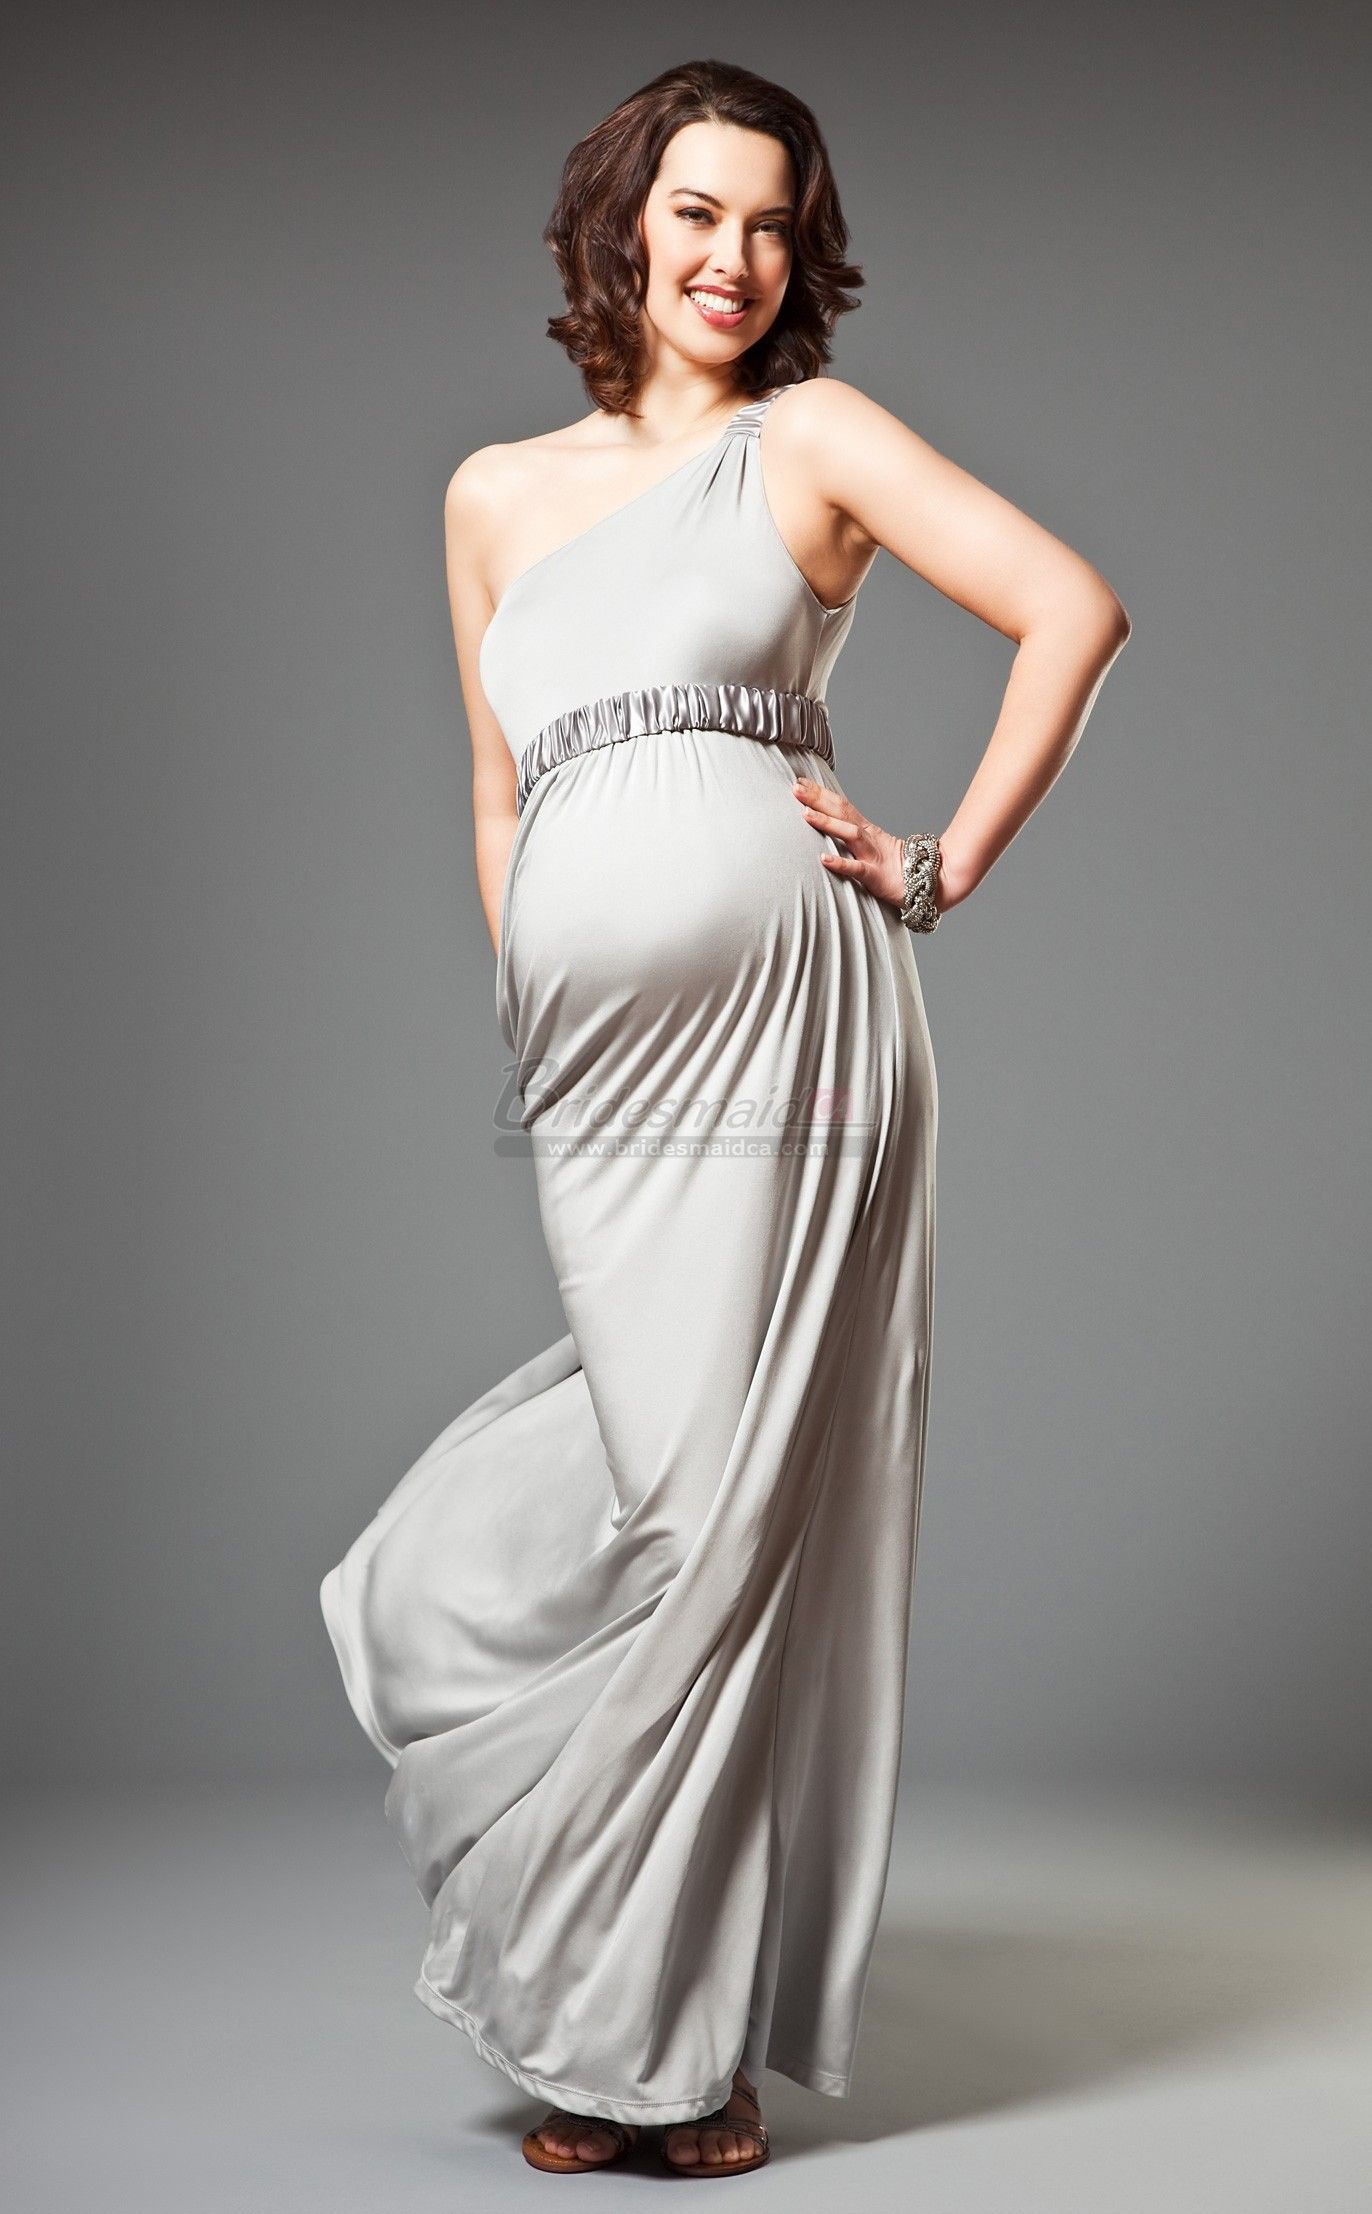 Bridesmaiddresses ankle length one shoulder silver knitwear bridesmaiddresses ankle length one shoulder silver knitwear maternity bridesmaid dress mdca 001 ombrellifo Choice Image